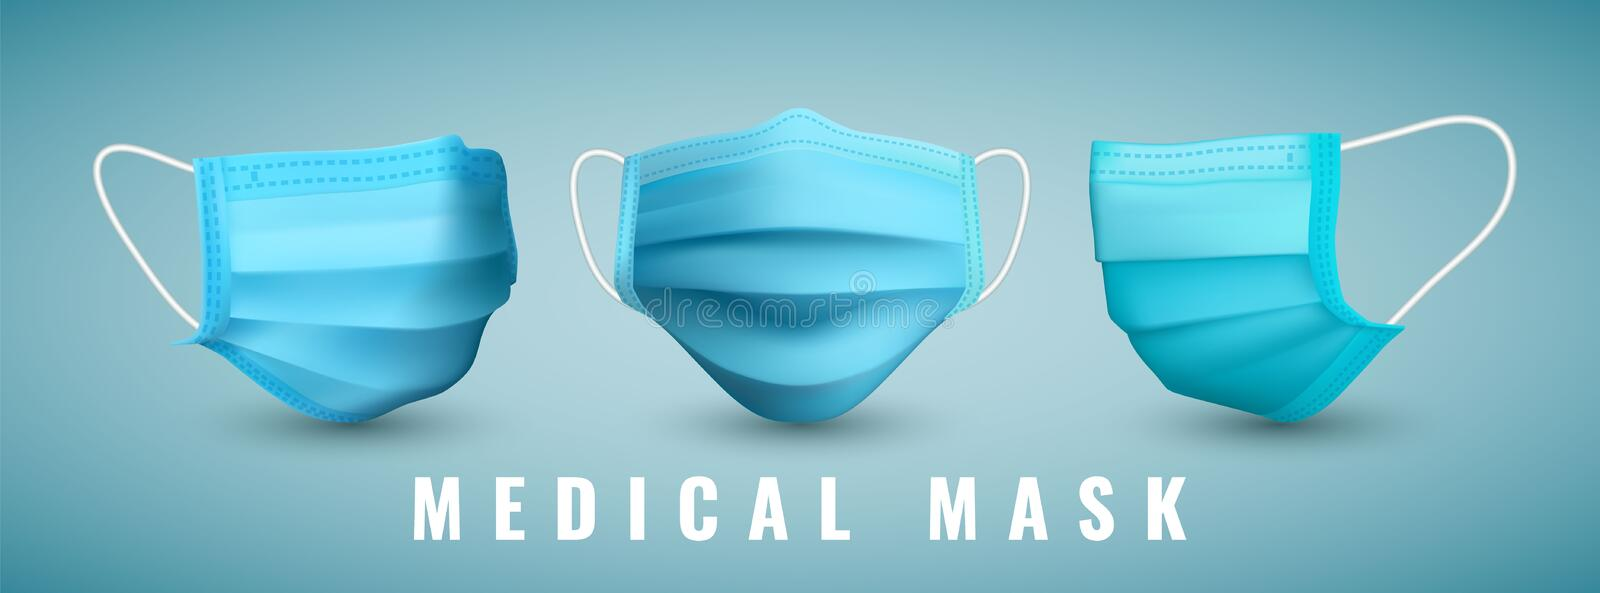 Realistic medical face mask. Details 3d medical mask. Vector illustration.  royalty free illustration